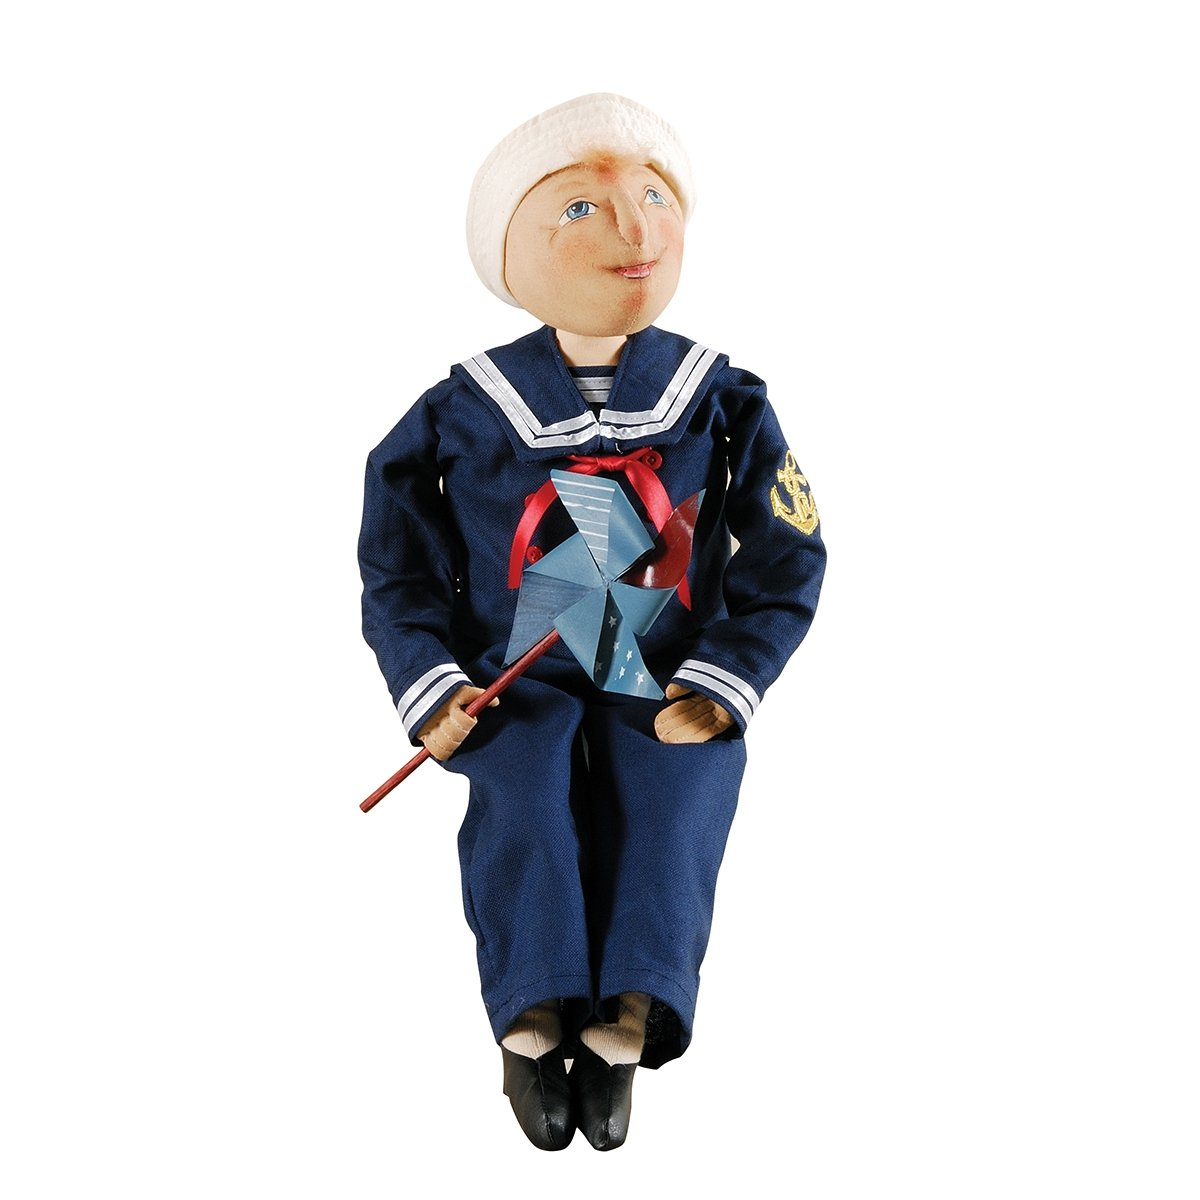 Sailor Boy, ''Sid'' Figure, Soft Sculpture Doll